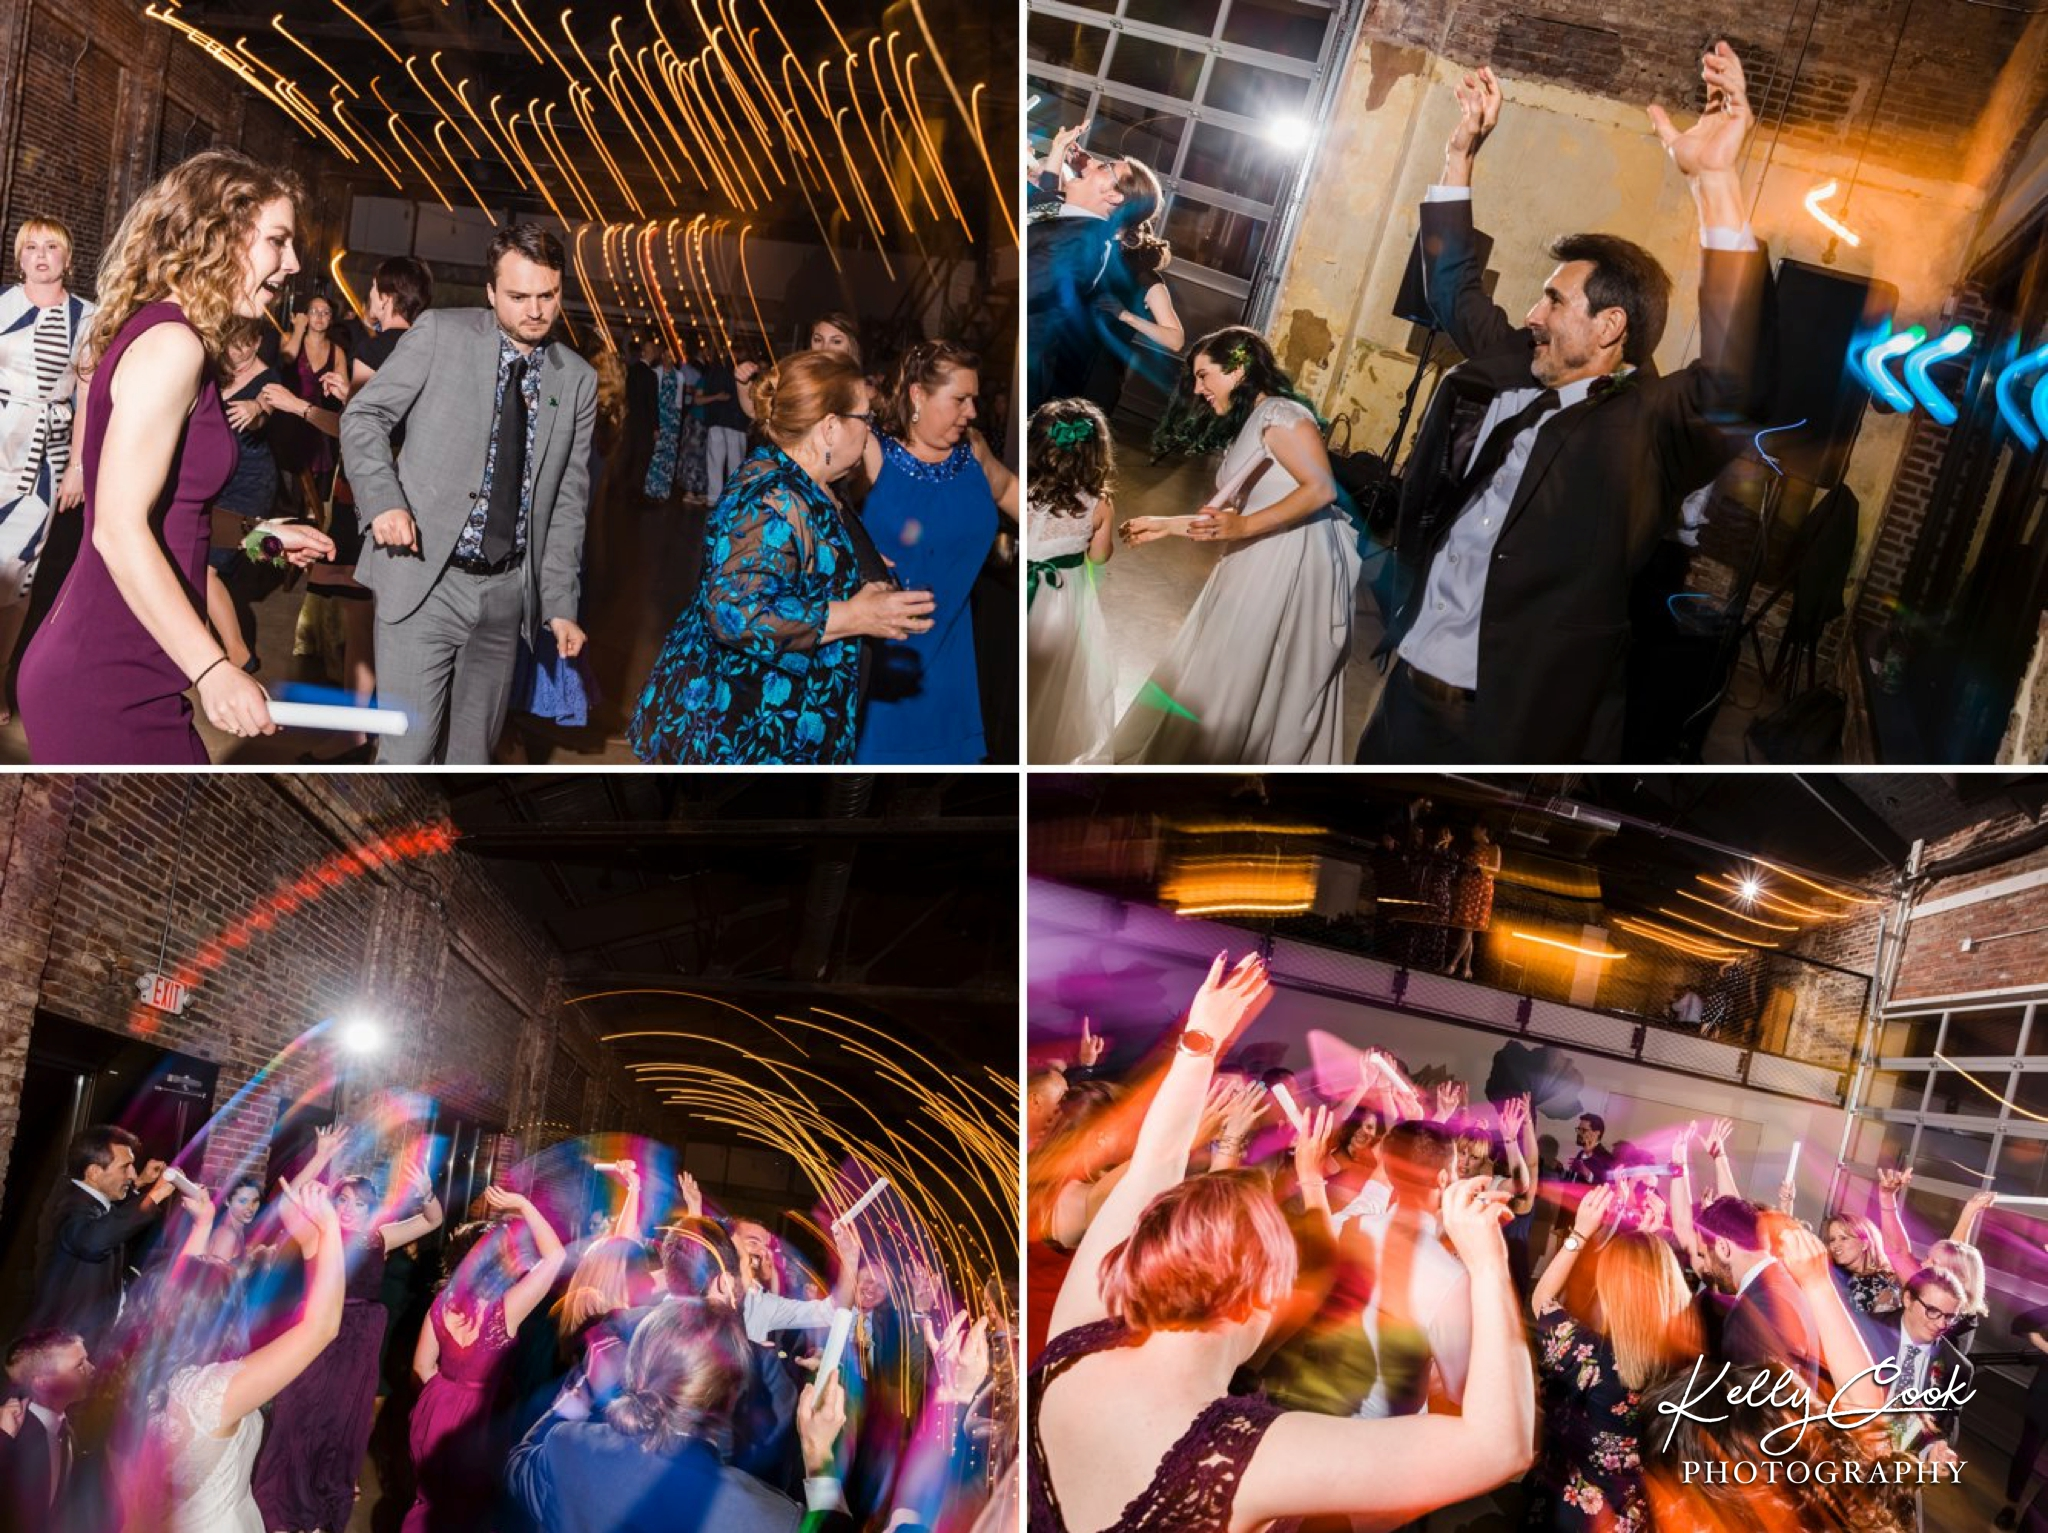 Fun dancing photos from a Wild Carrot wedding in St. Louis